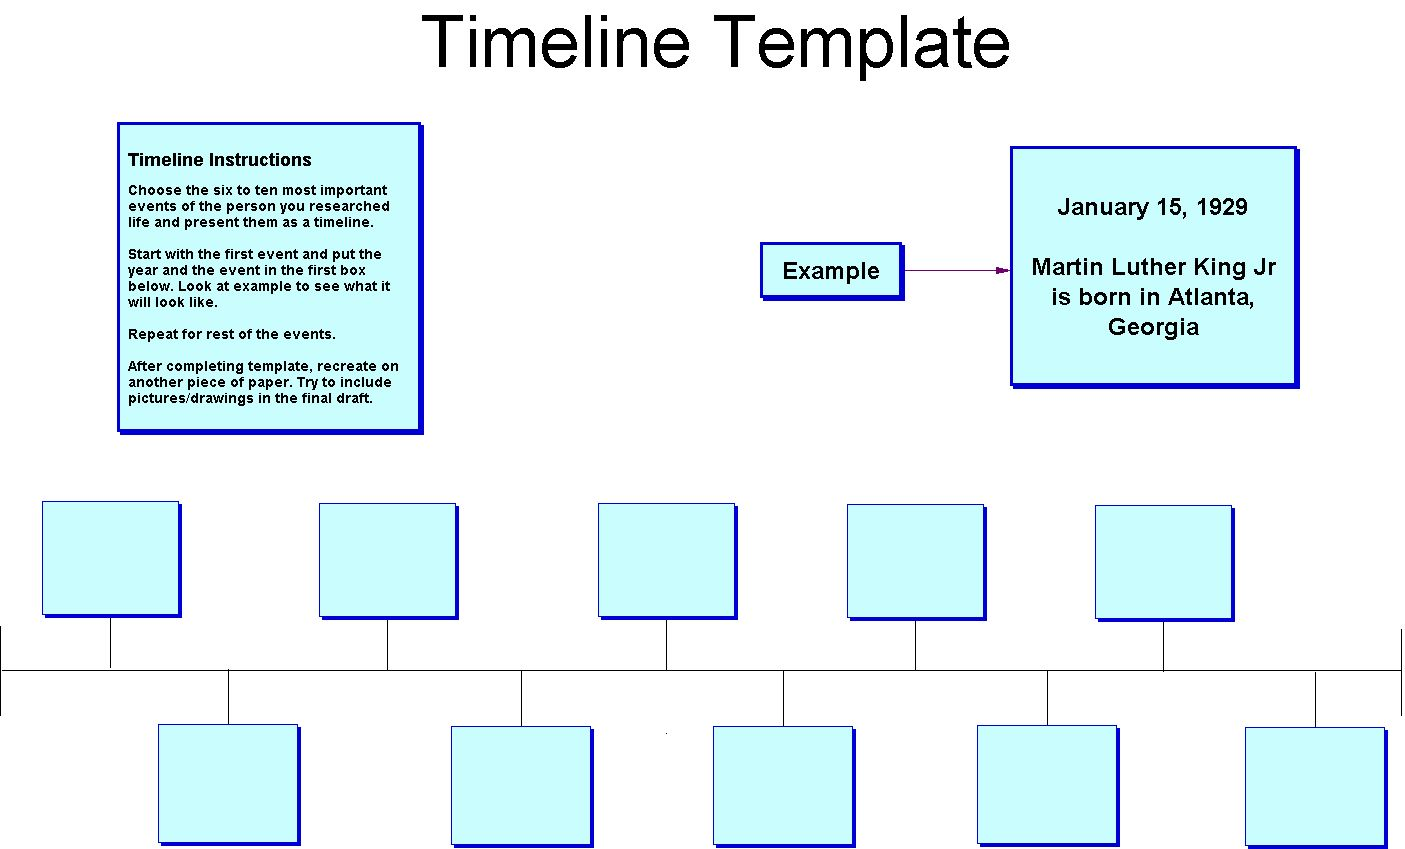 Timeline Template For Kids Images   Pictures Becuo N2wxOFzi